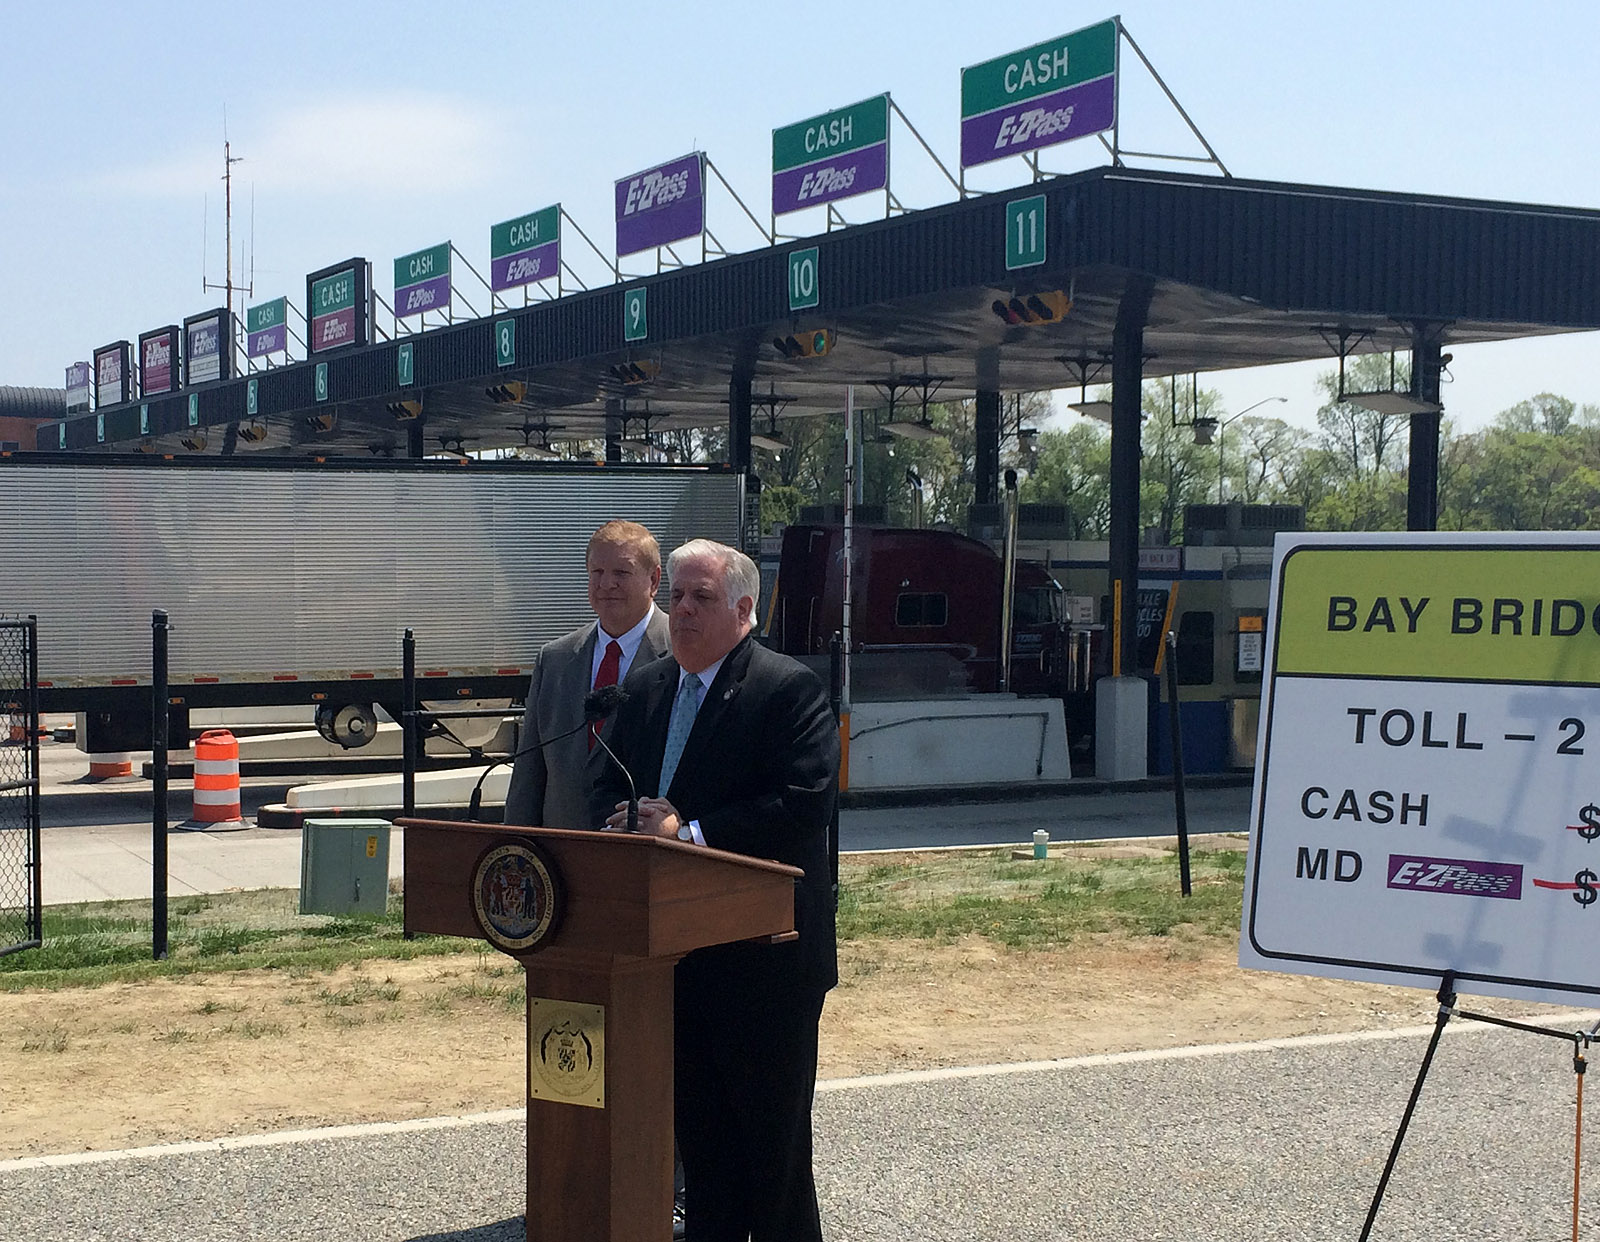 Maryland cuts tolls on Bay Bridge, ICC